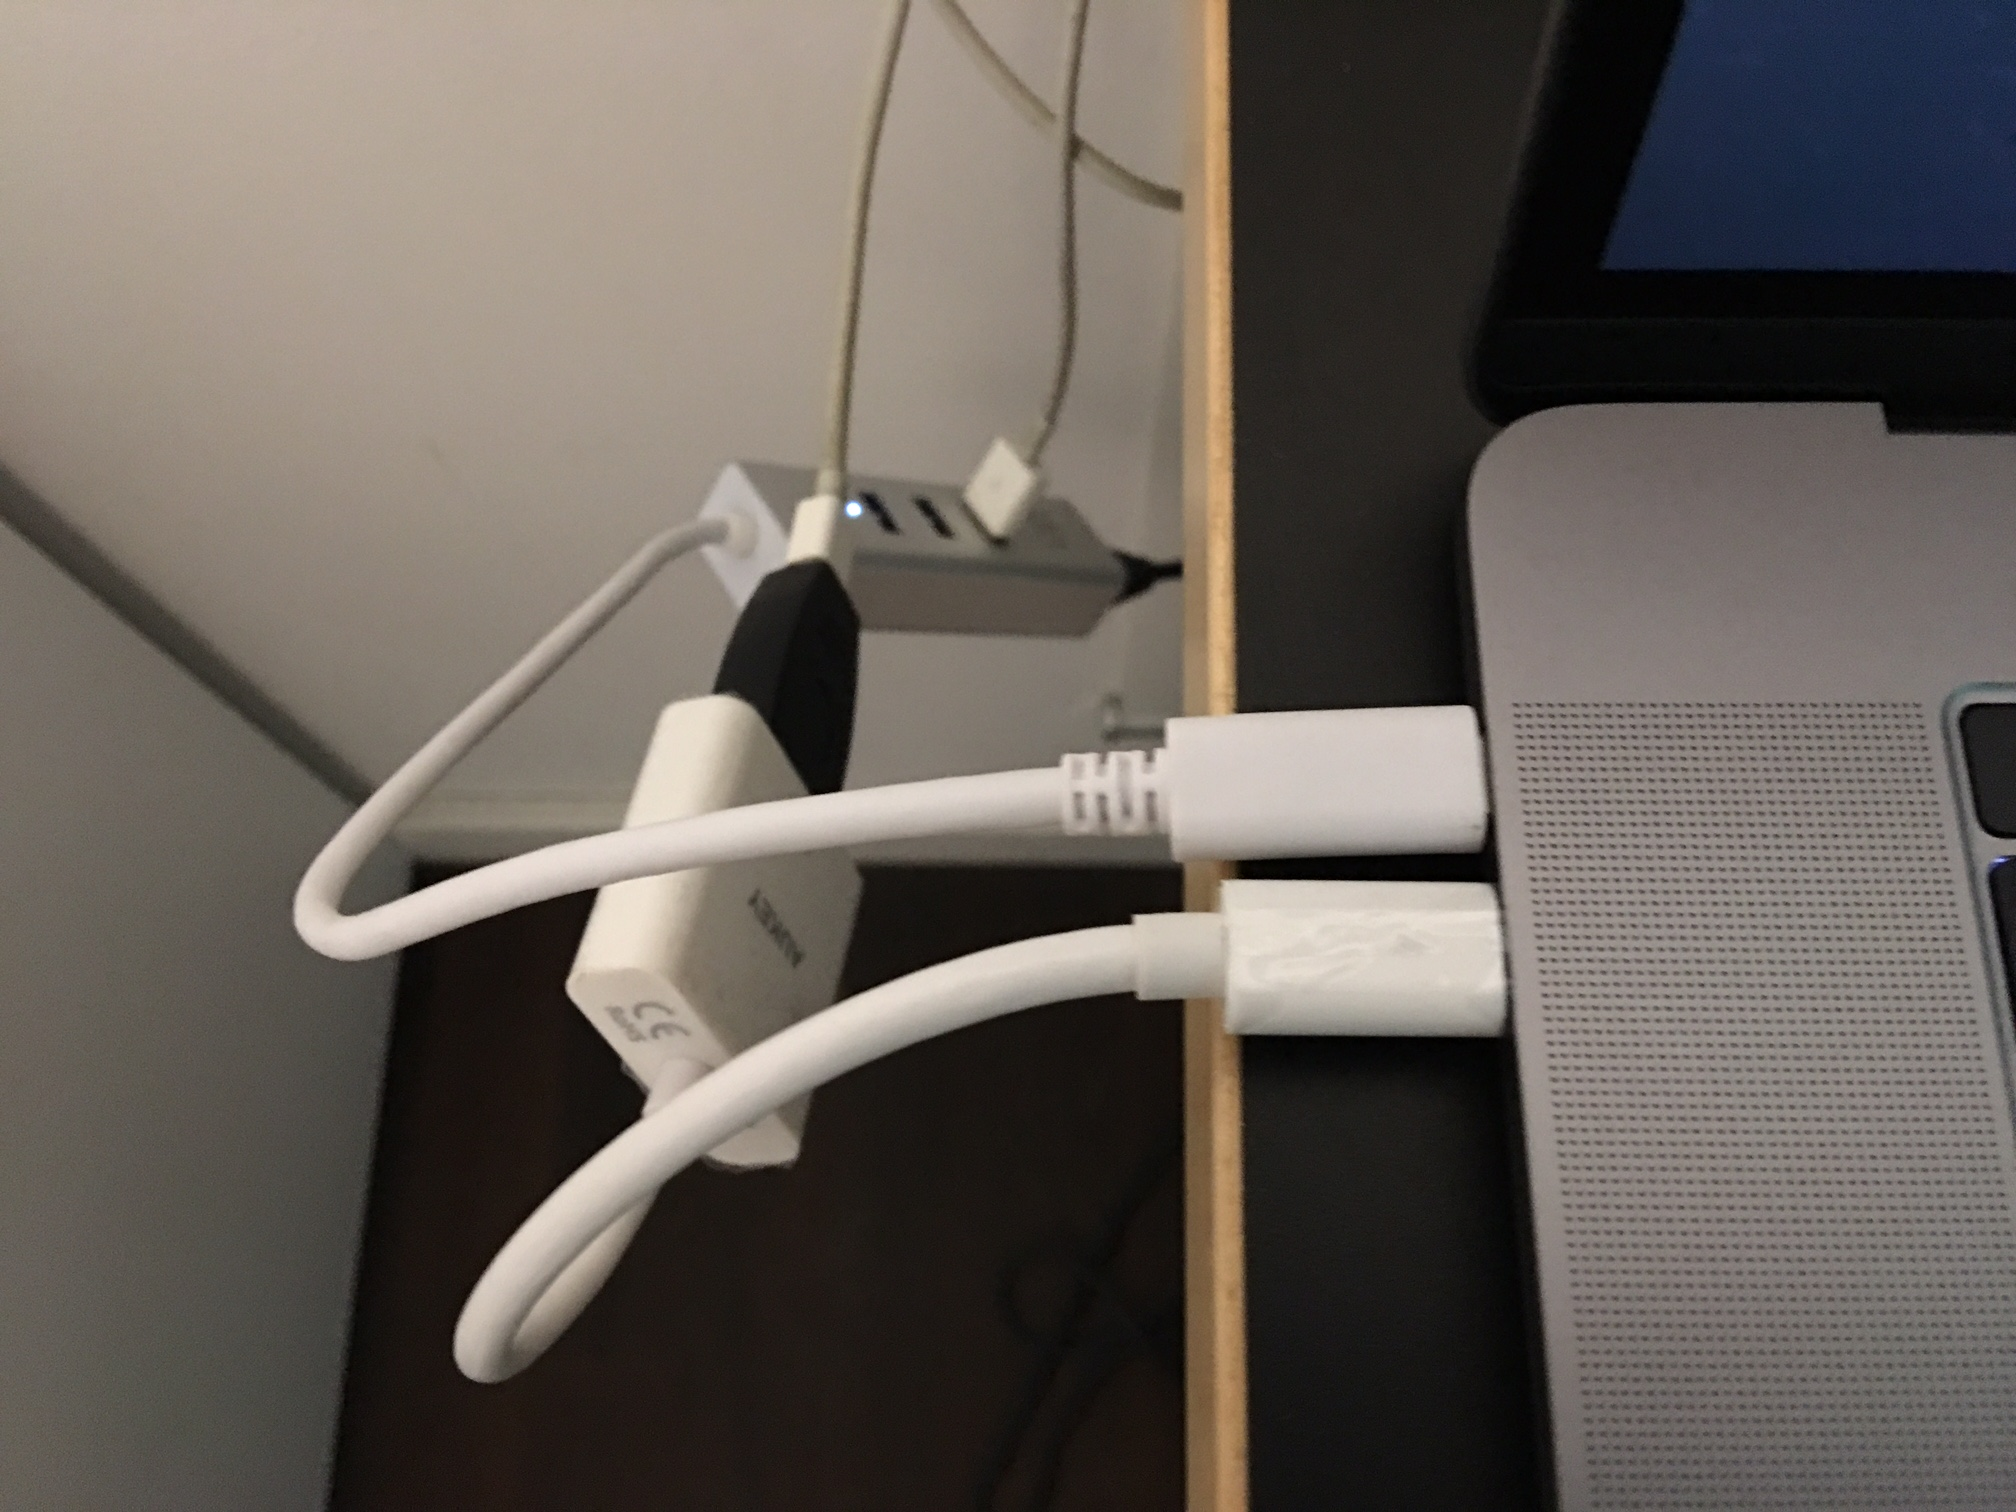 Apple Macbook Pro Thunderbolt3 Mini-DisplayPort